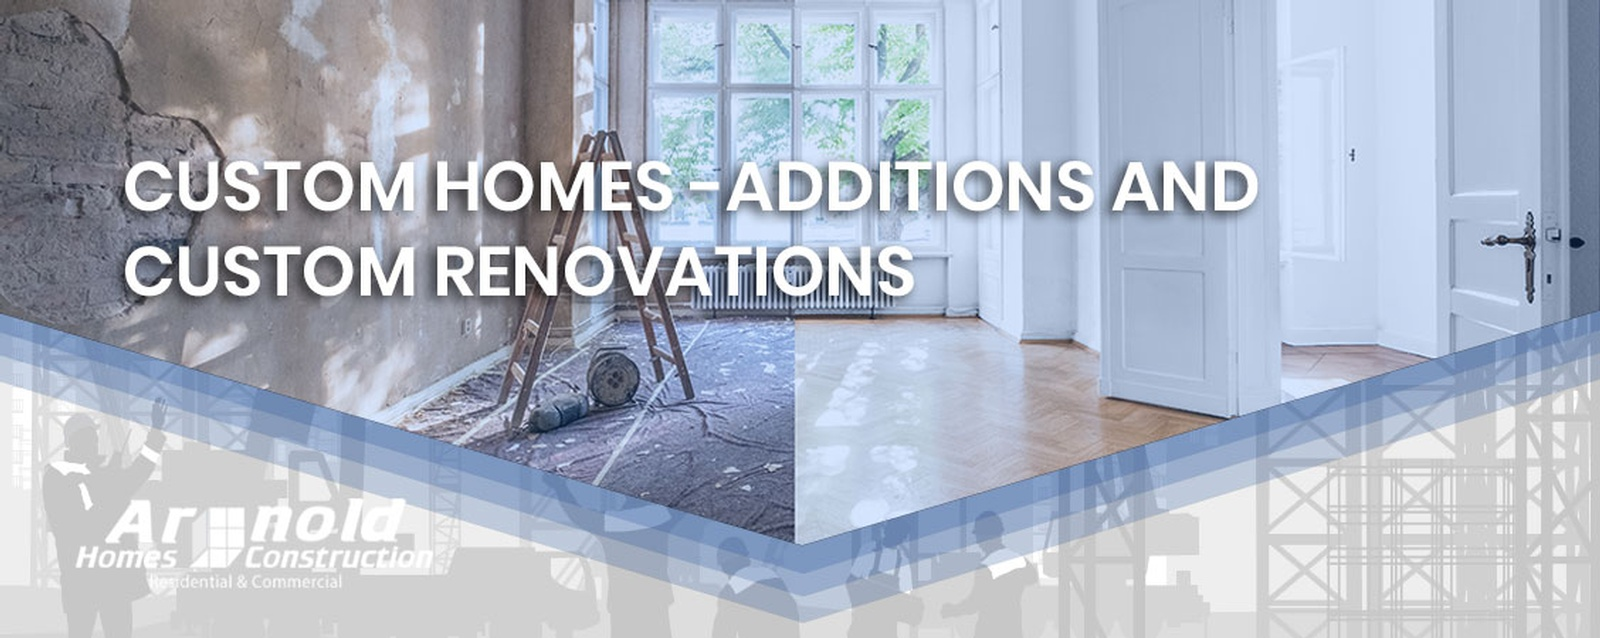 Custom Home Additions and Renovations by Arnold Homes Ltd